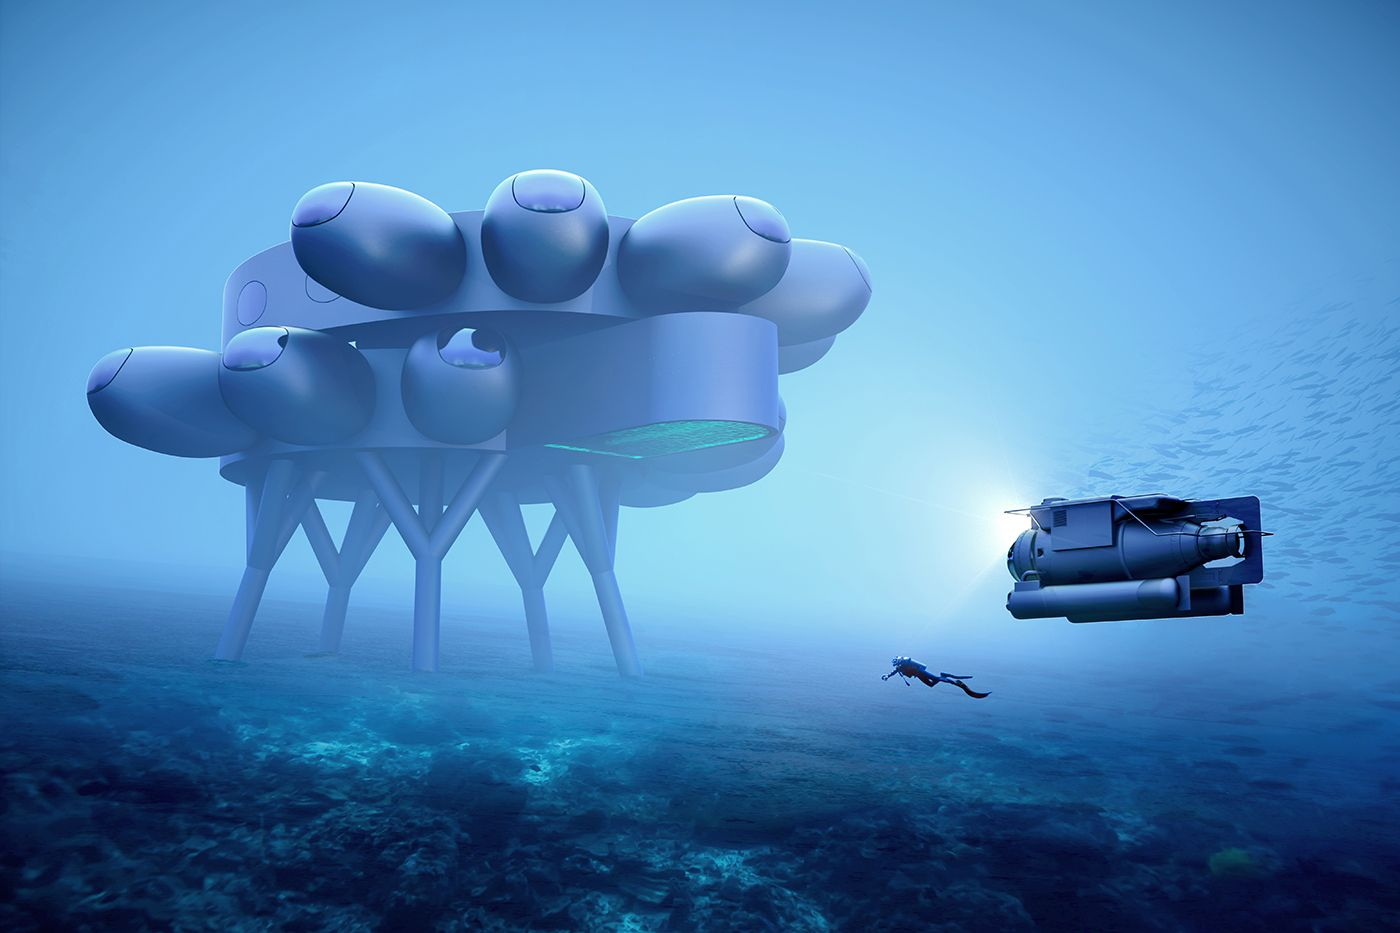 How About a Space Station at the Bottom of the Ocean?